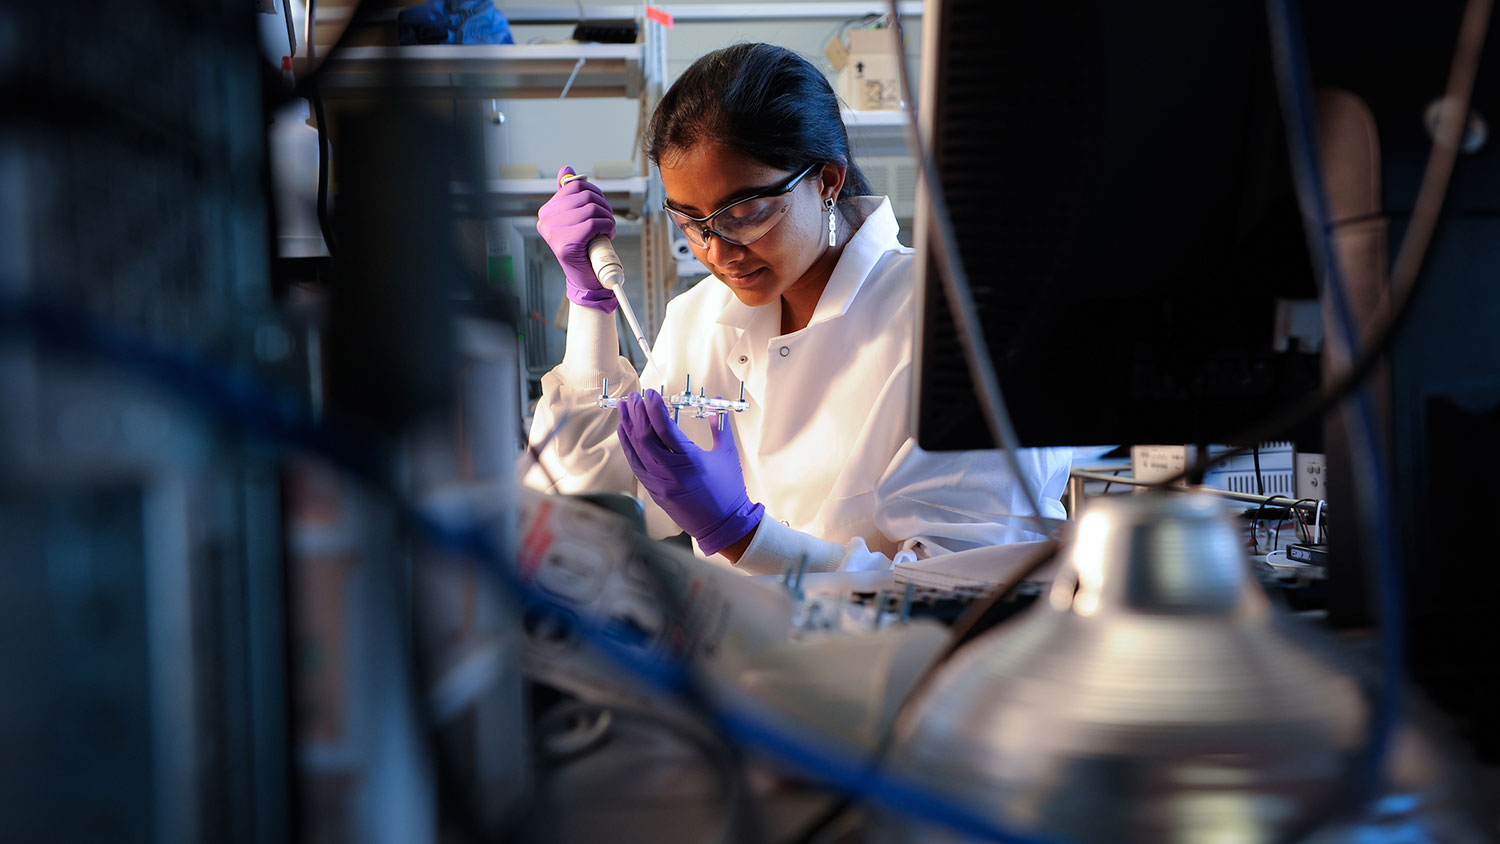 Biomedical engineering doctoral student Vindhya Kunduru had no idea she was going to become an expert on Salmonella, bacterial infections and chickens.